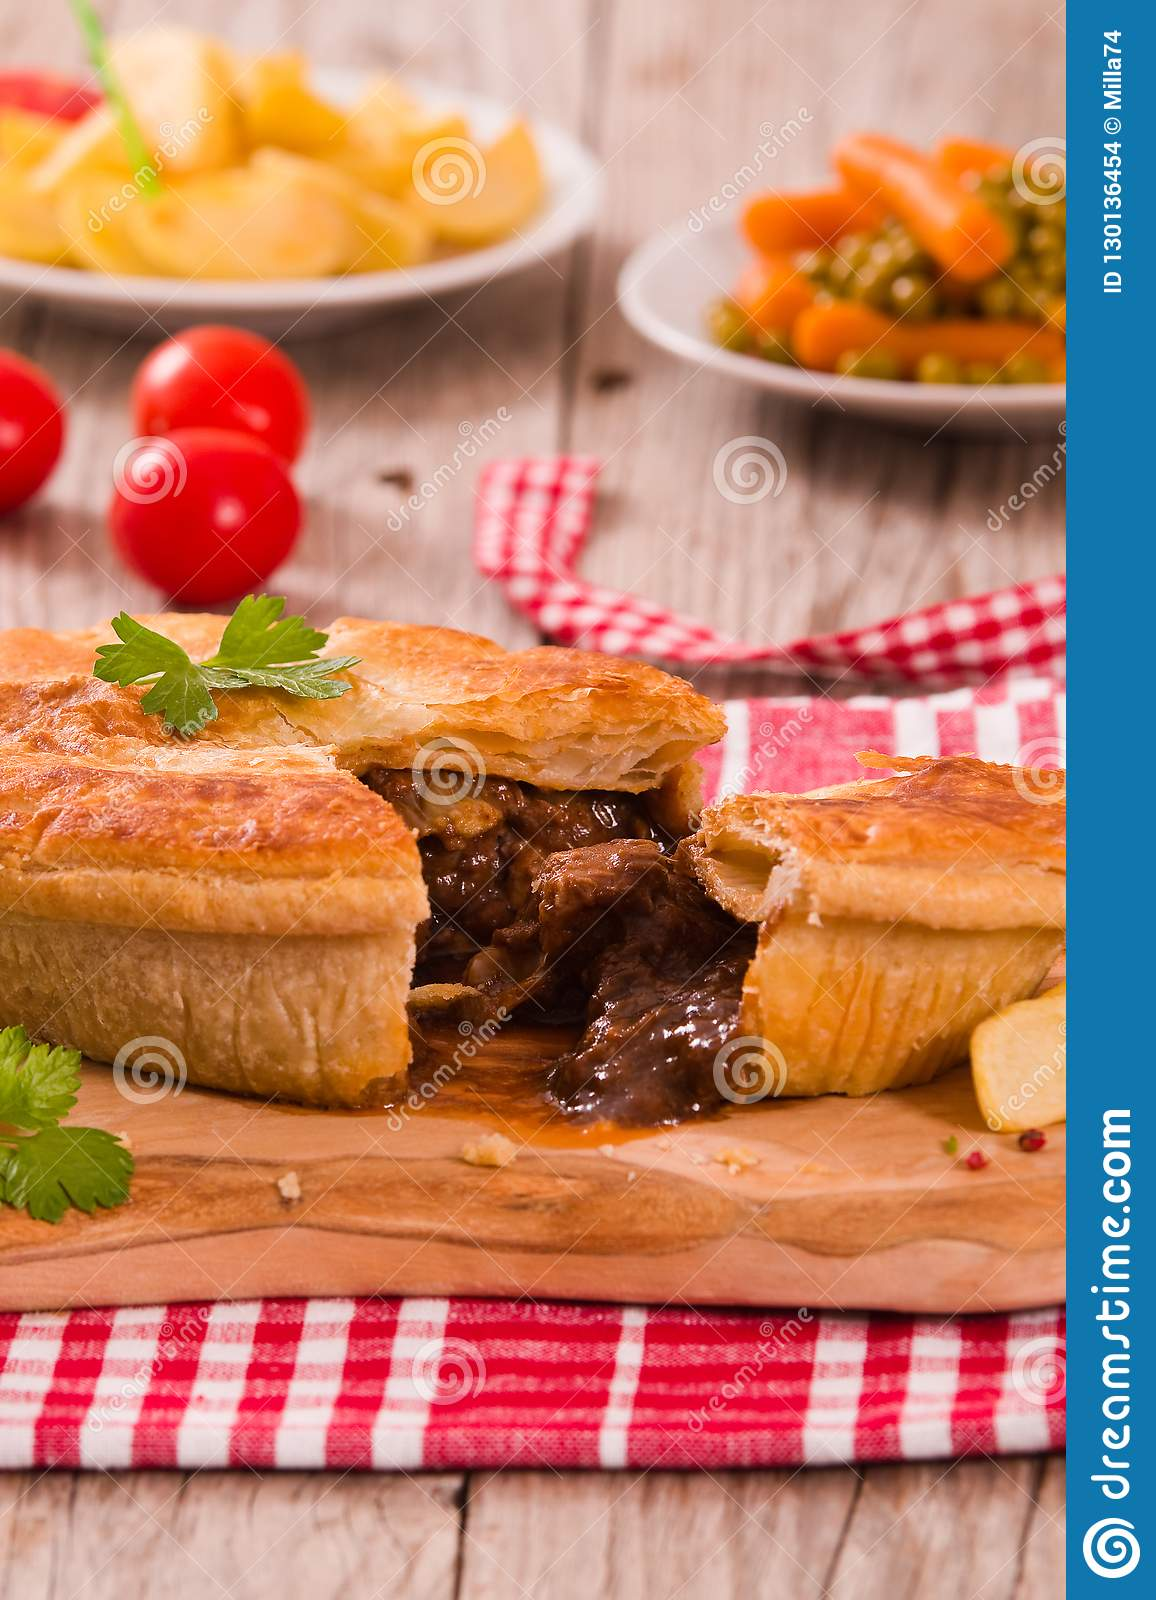 Steak pie. stock photo. Image of delicious, food, pastry ...